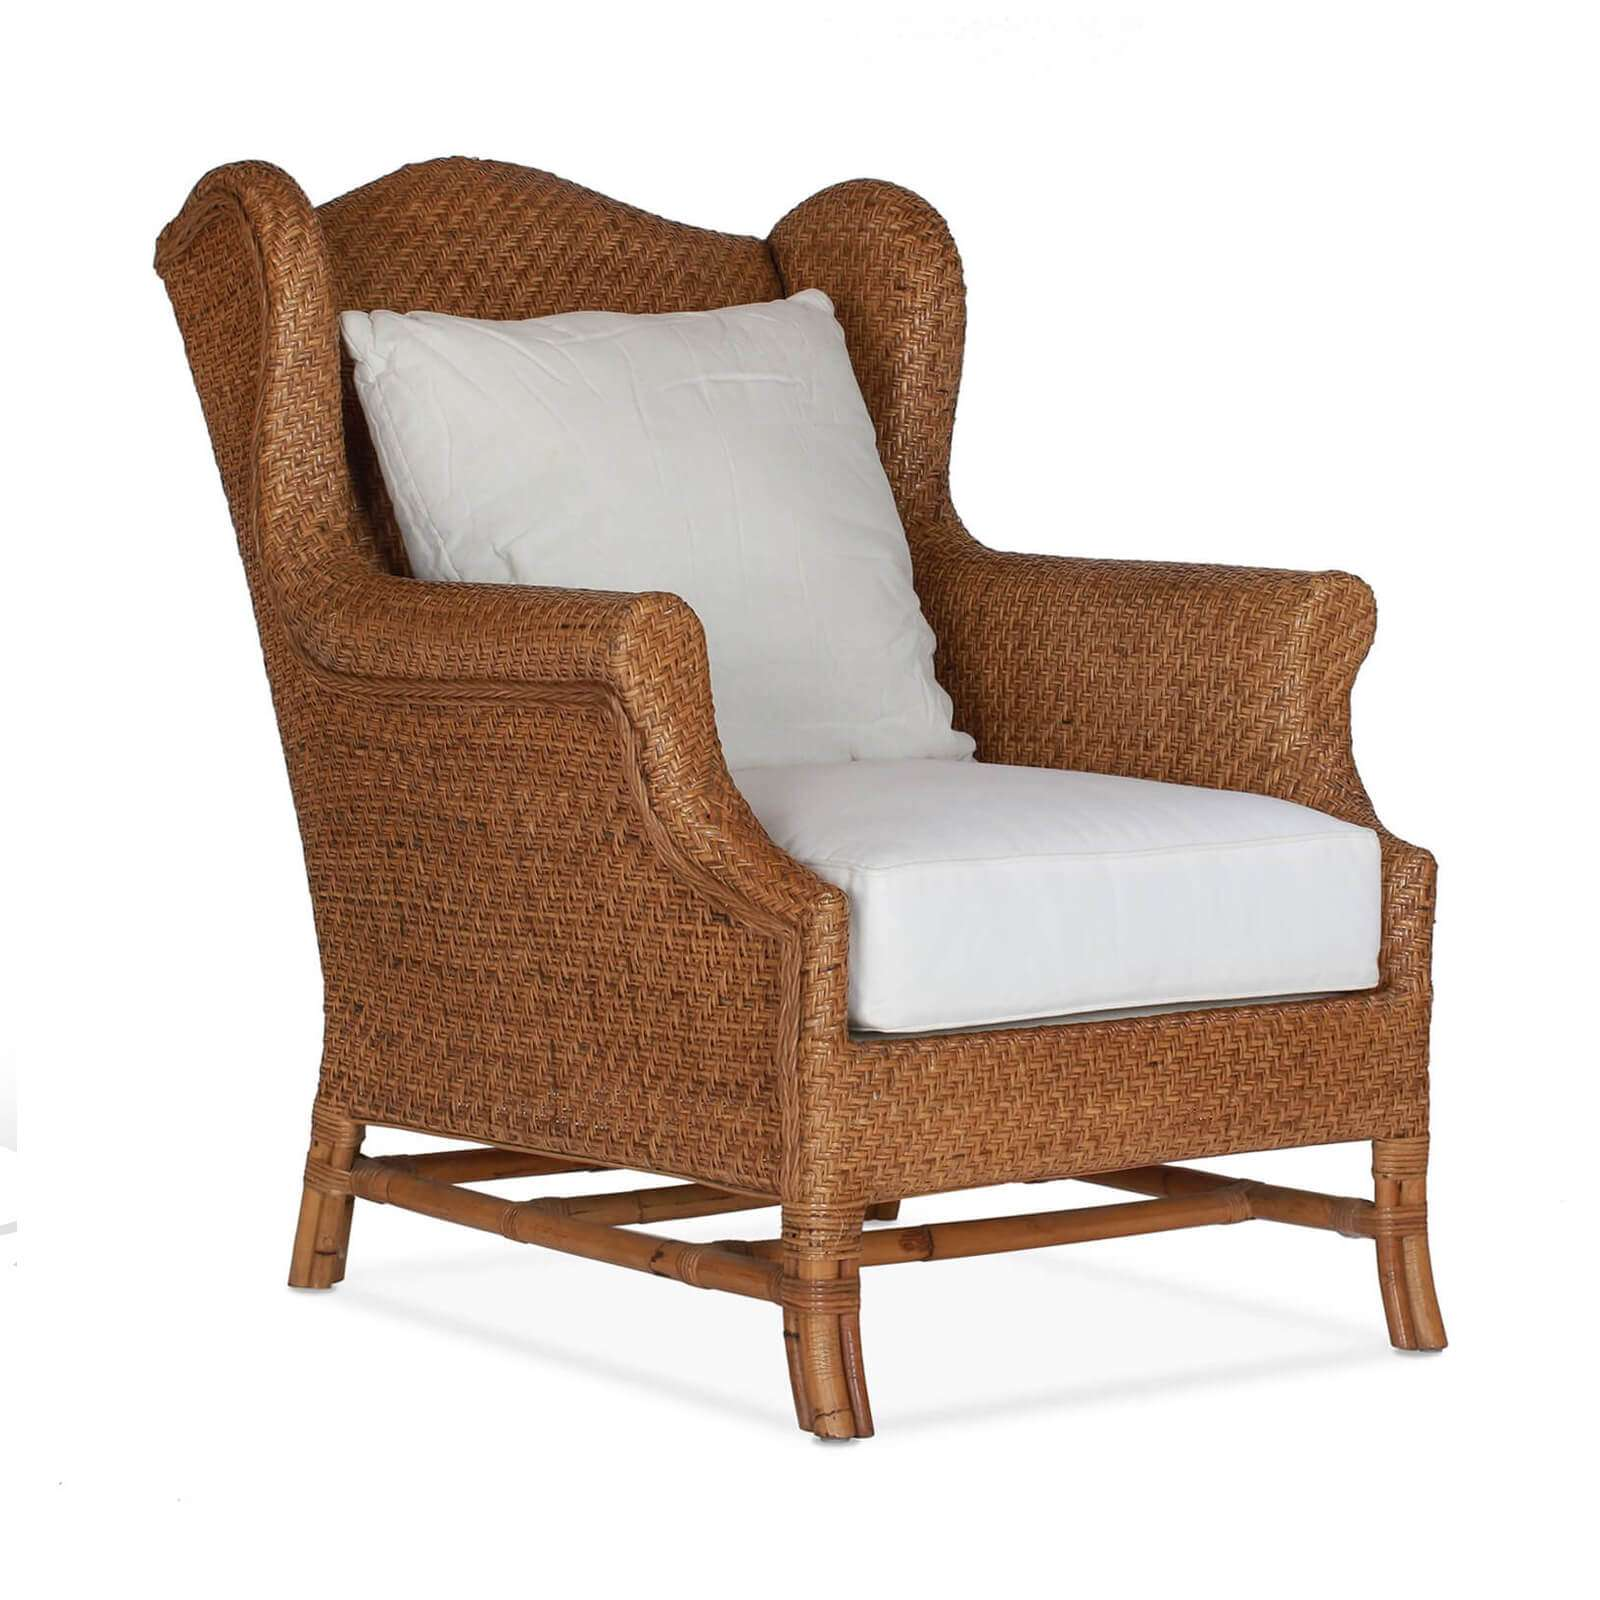 SAVANNA WING CHAIR 11 - STUART MEMBERY HOME COLLECTION